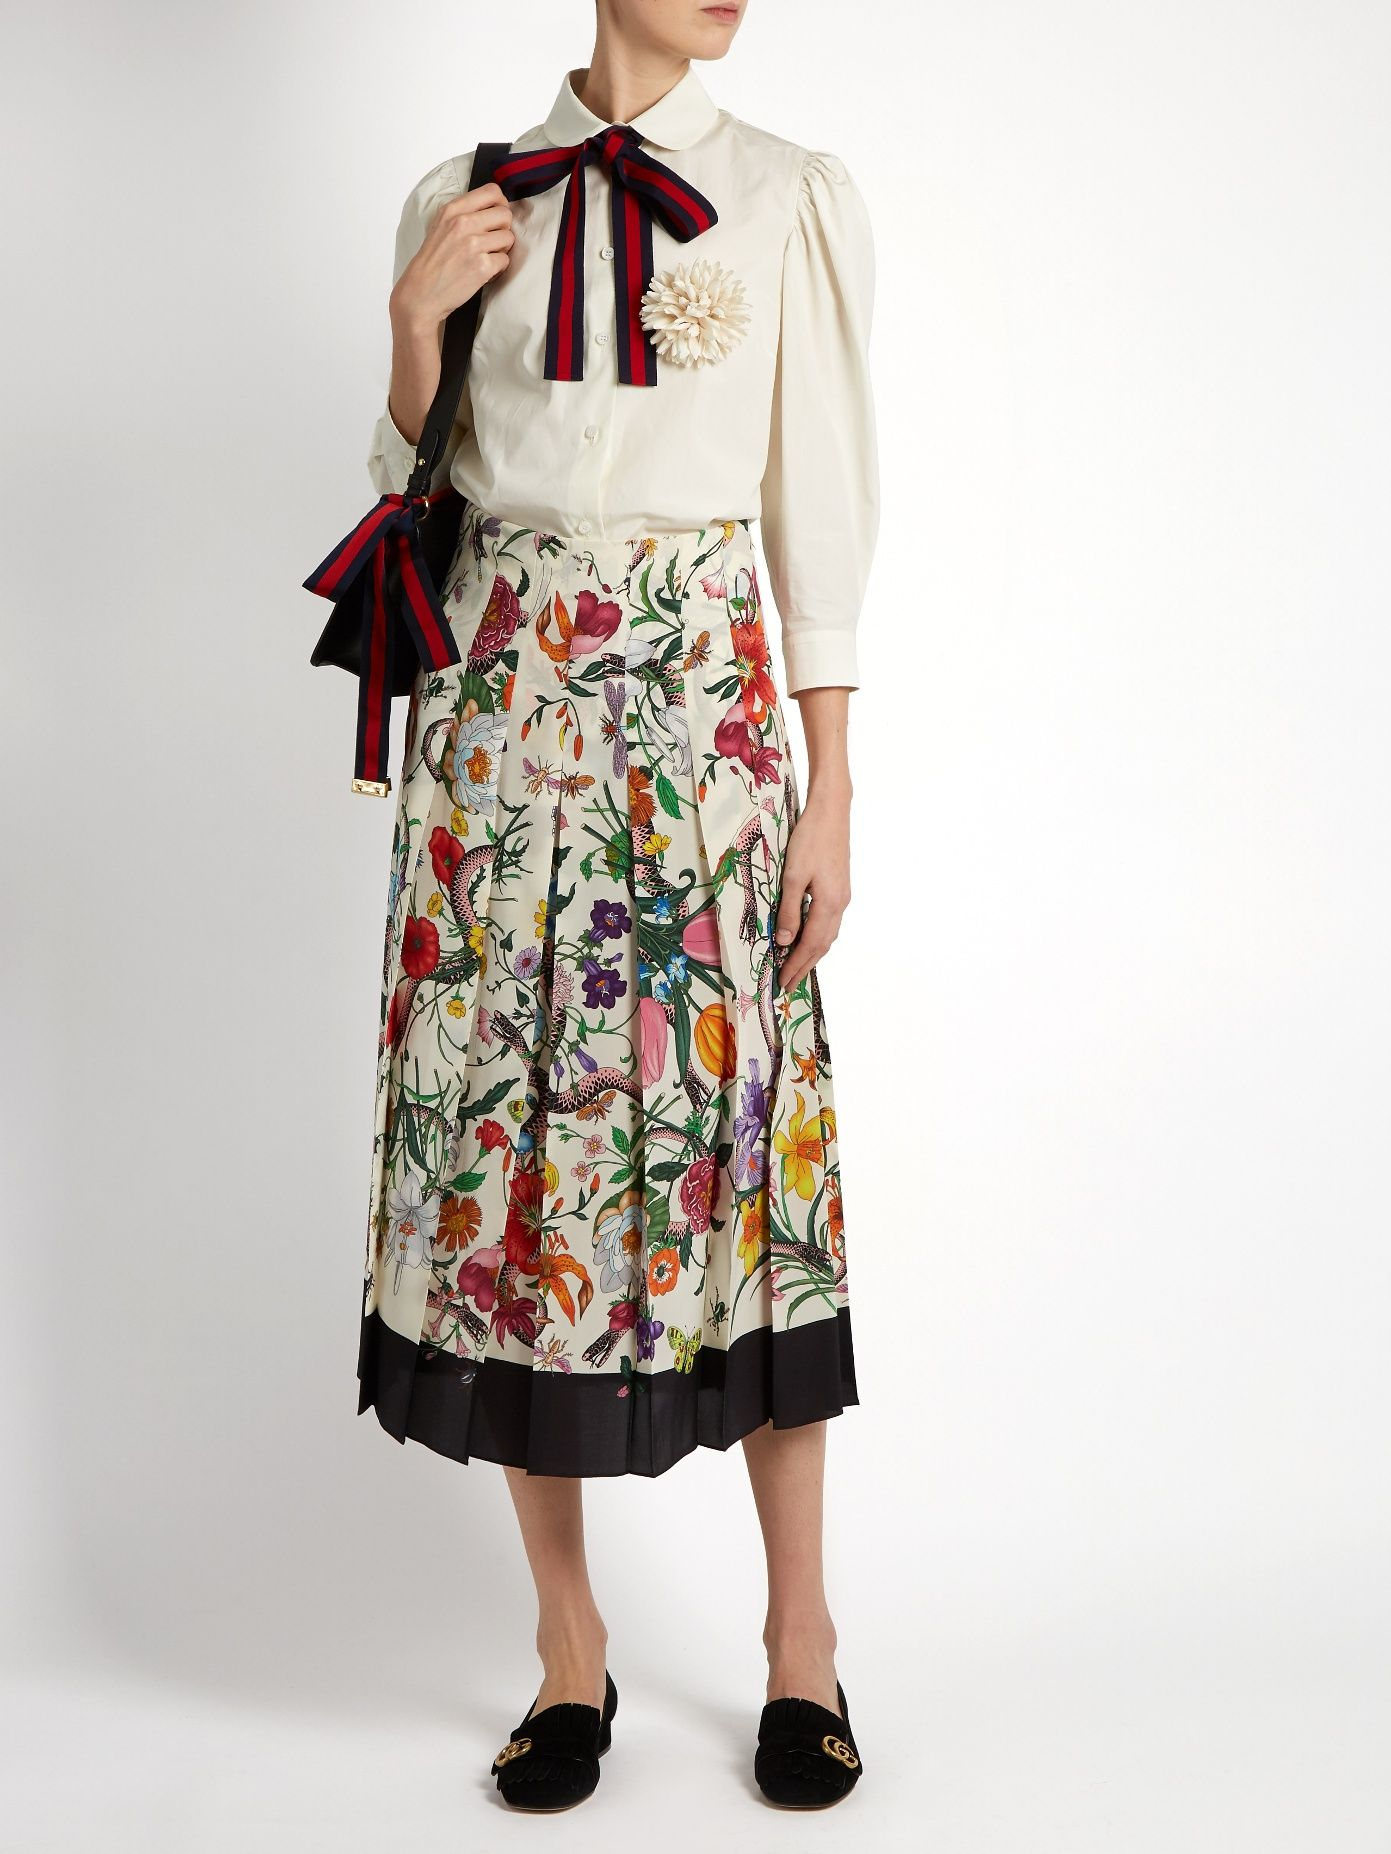 a5e218c25 Pin by Lamia Bajari on Midi skirt | Skirts, Gucci, Fashion